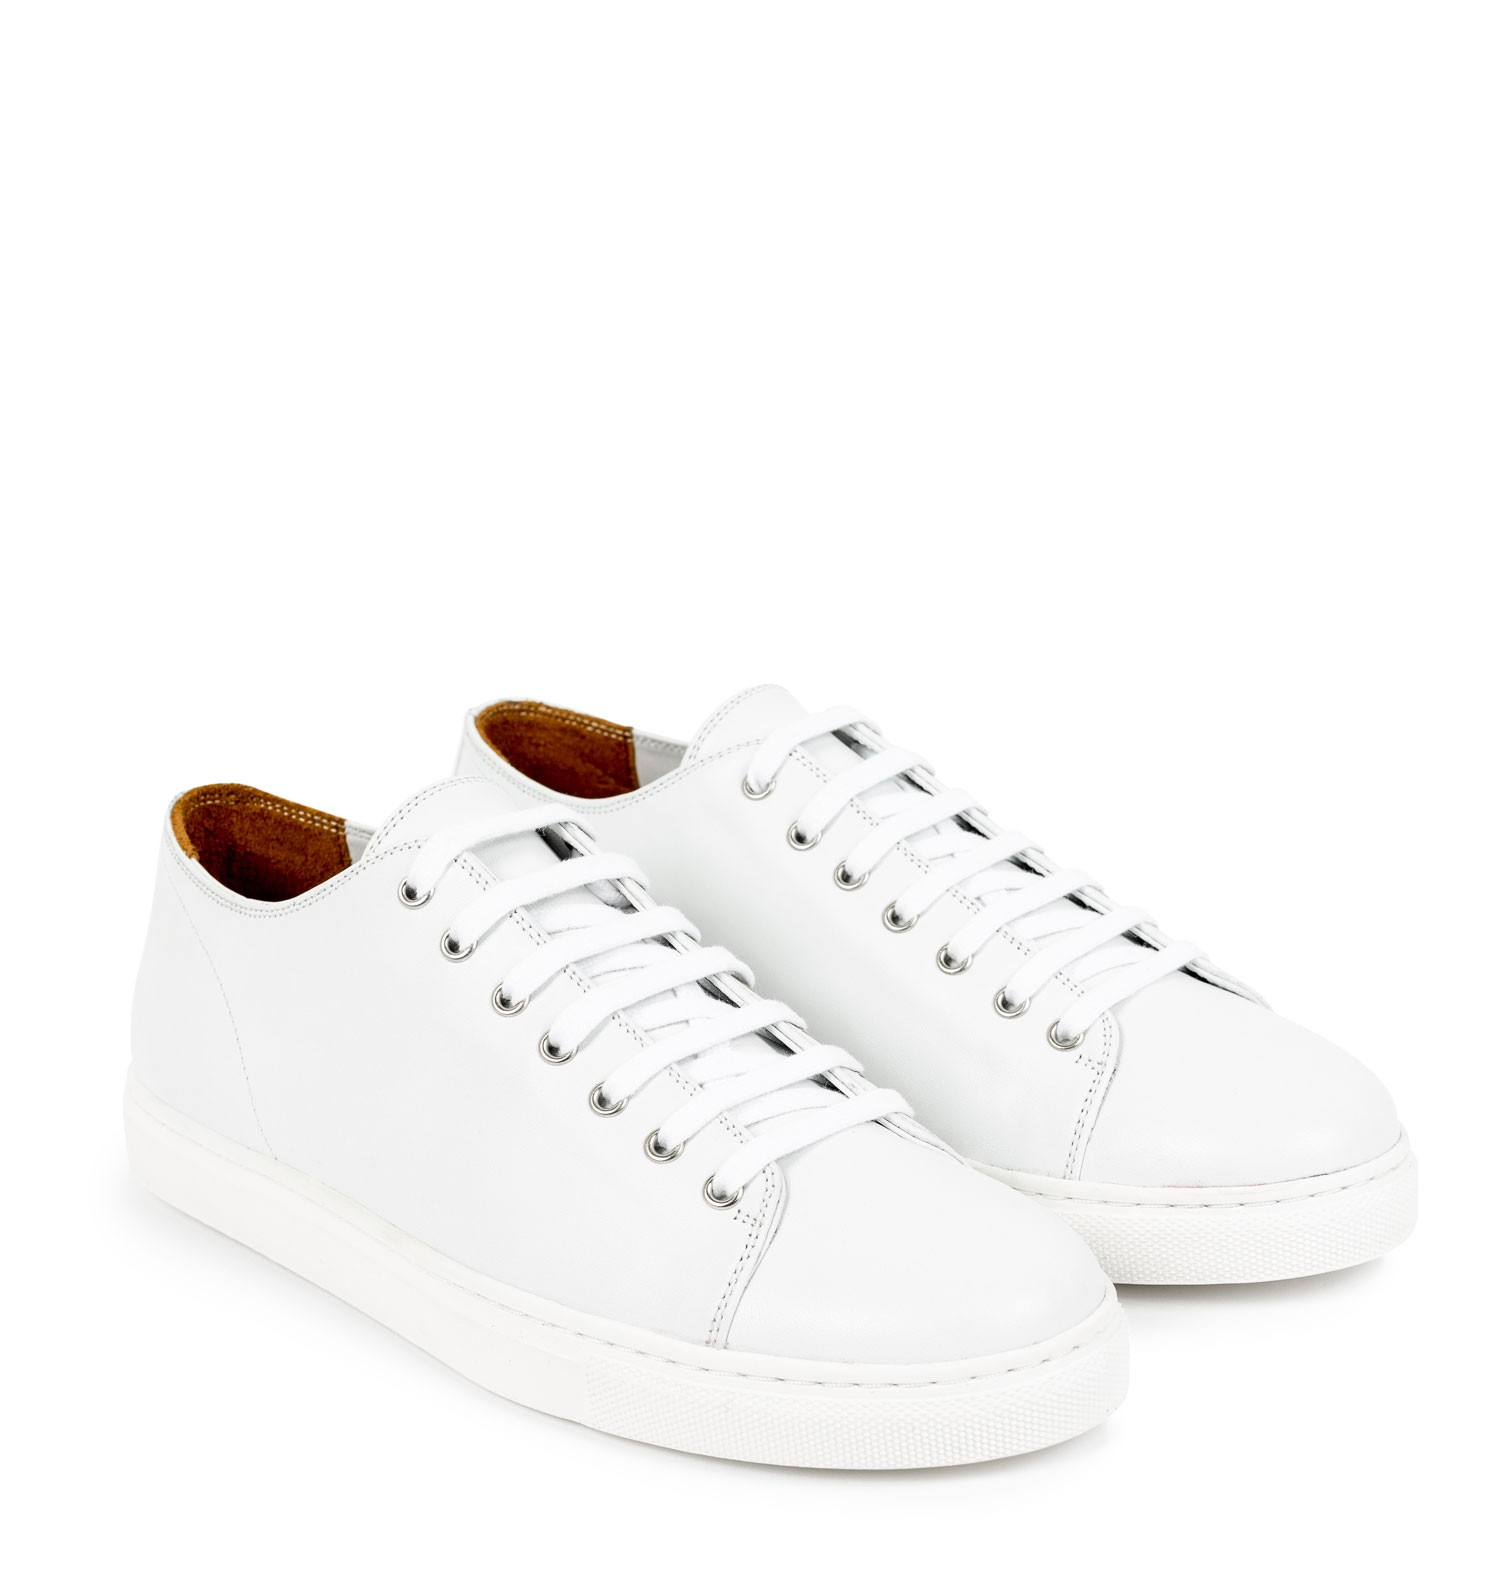 leather tennis shoes in white TCNAFMQ